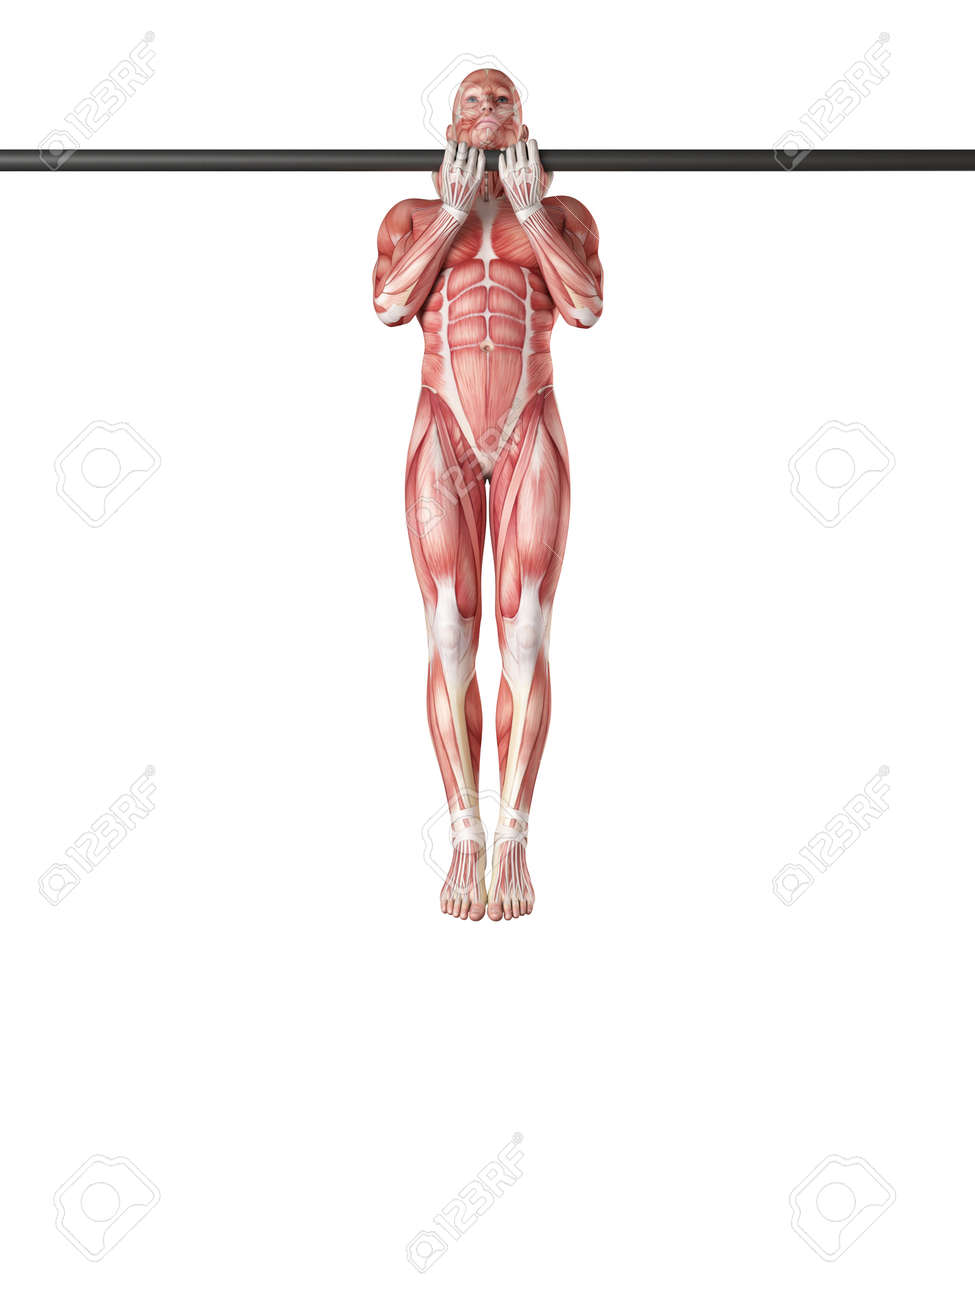 Exercise Illustration - Close Grip Chin Up Stock Photo, Picture And ...